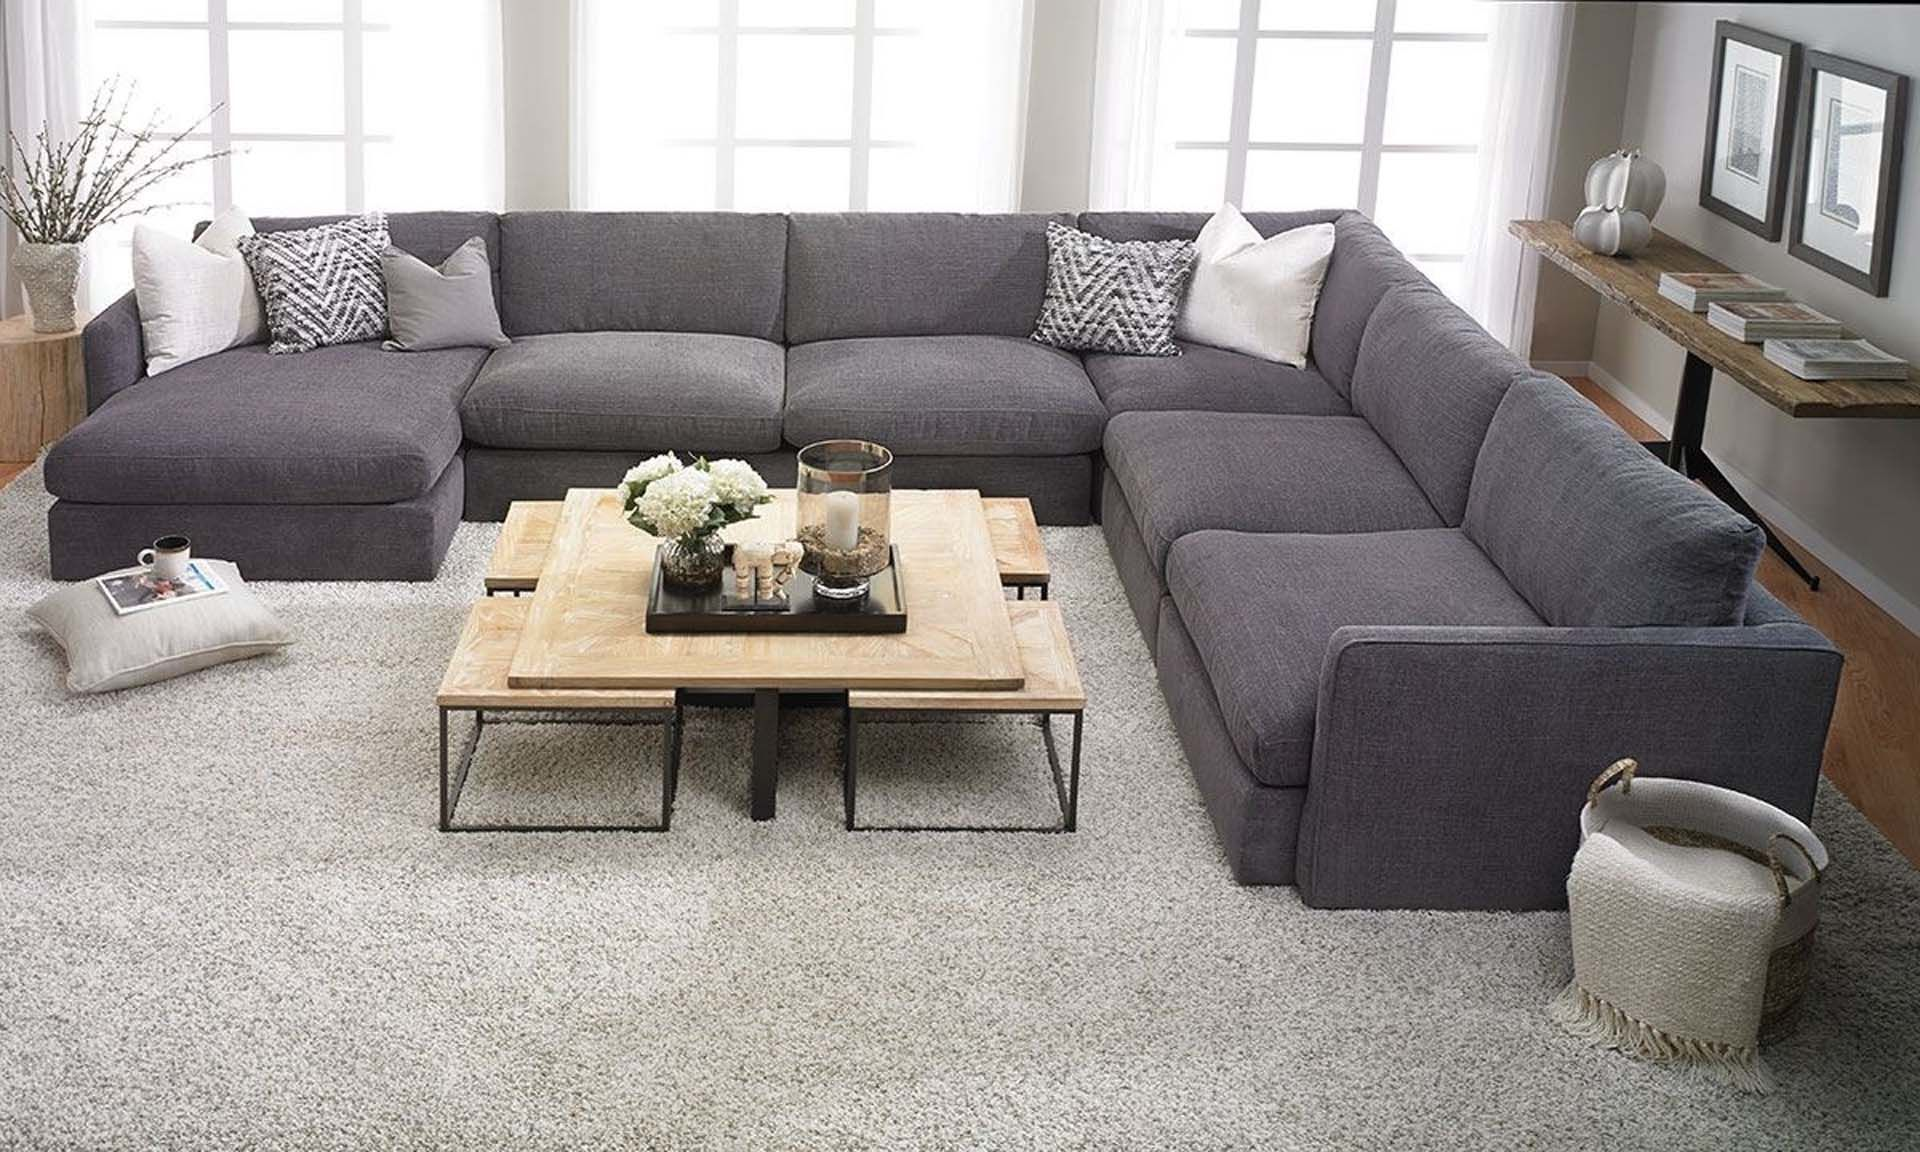 Pin By Candice Lopes On New Couch In 2020 Cheap Living Room Sets Sectional Furniture Deep Sectional Sofa #the #dump #living #room #sets